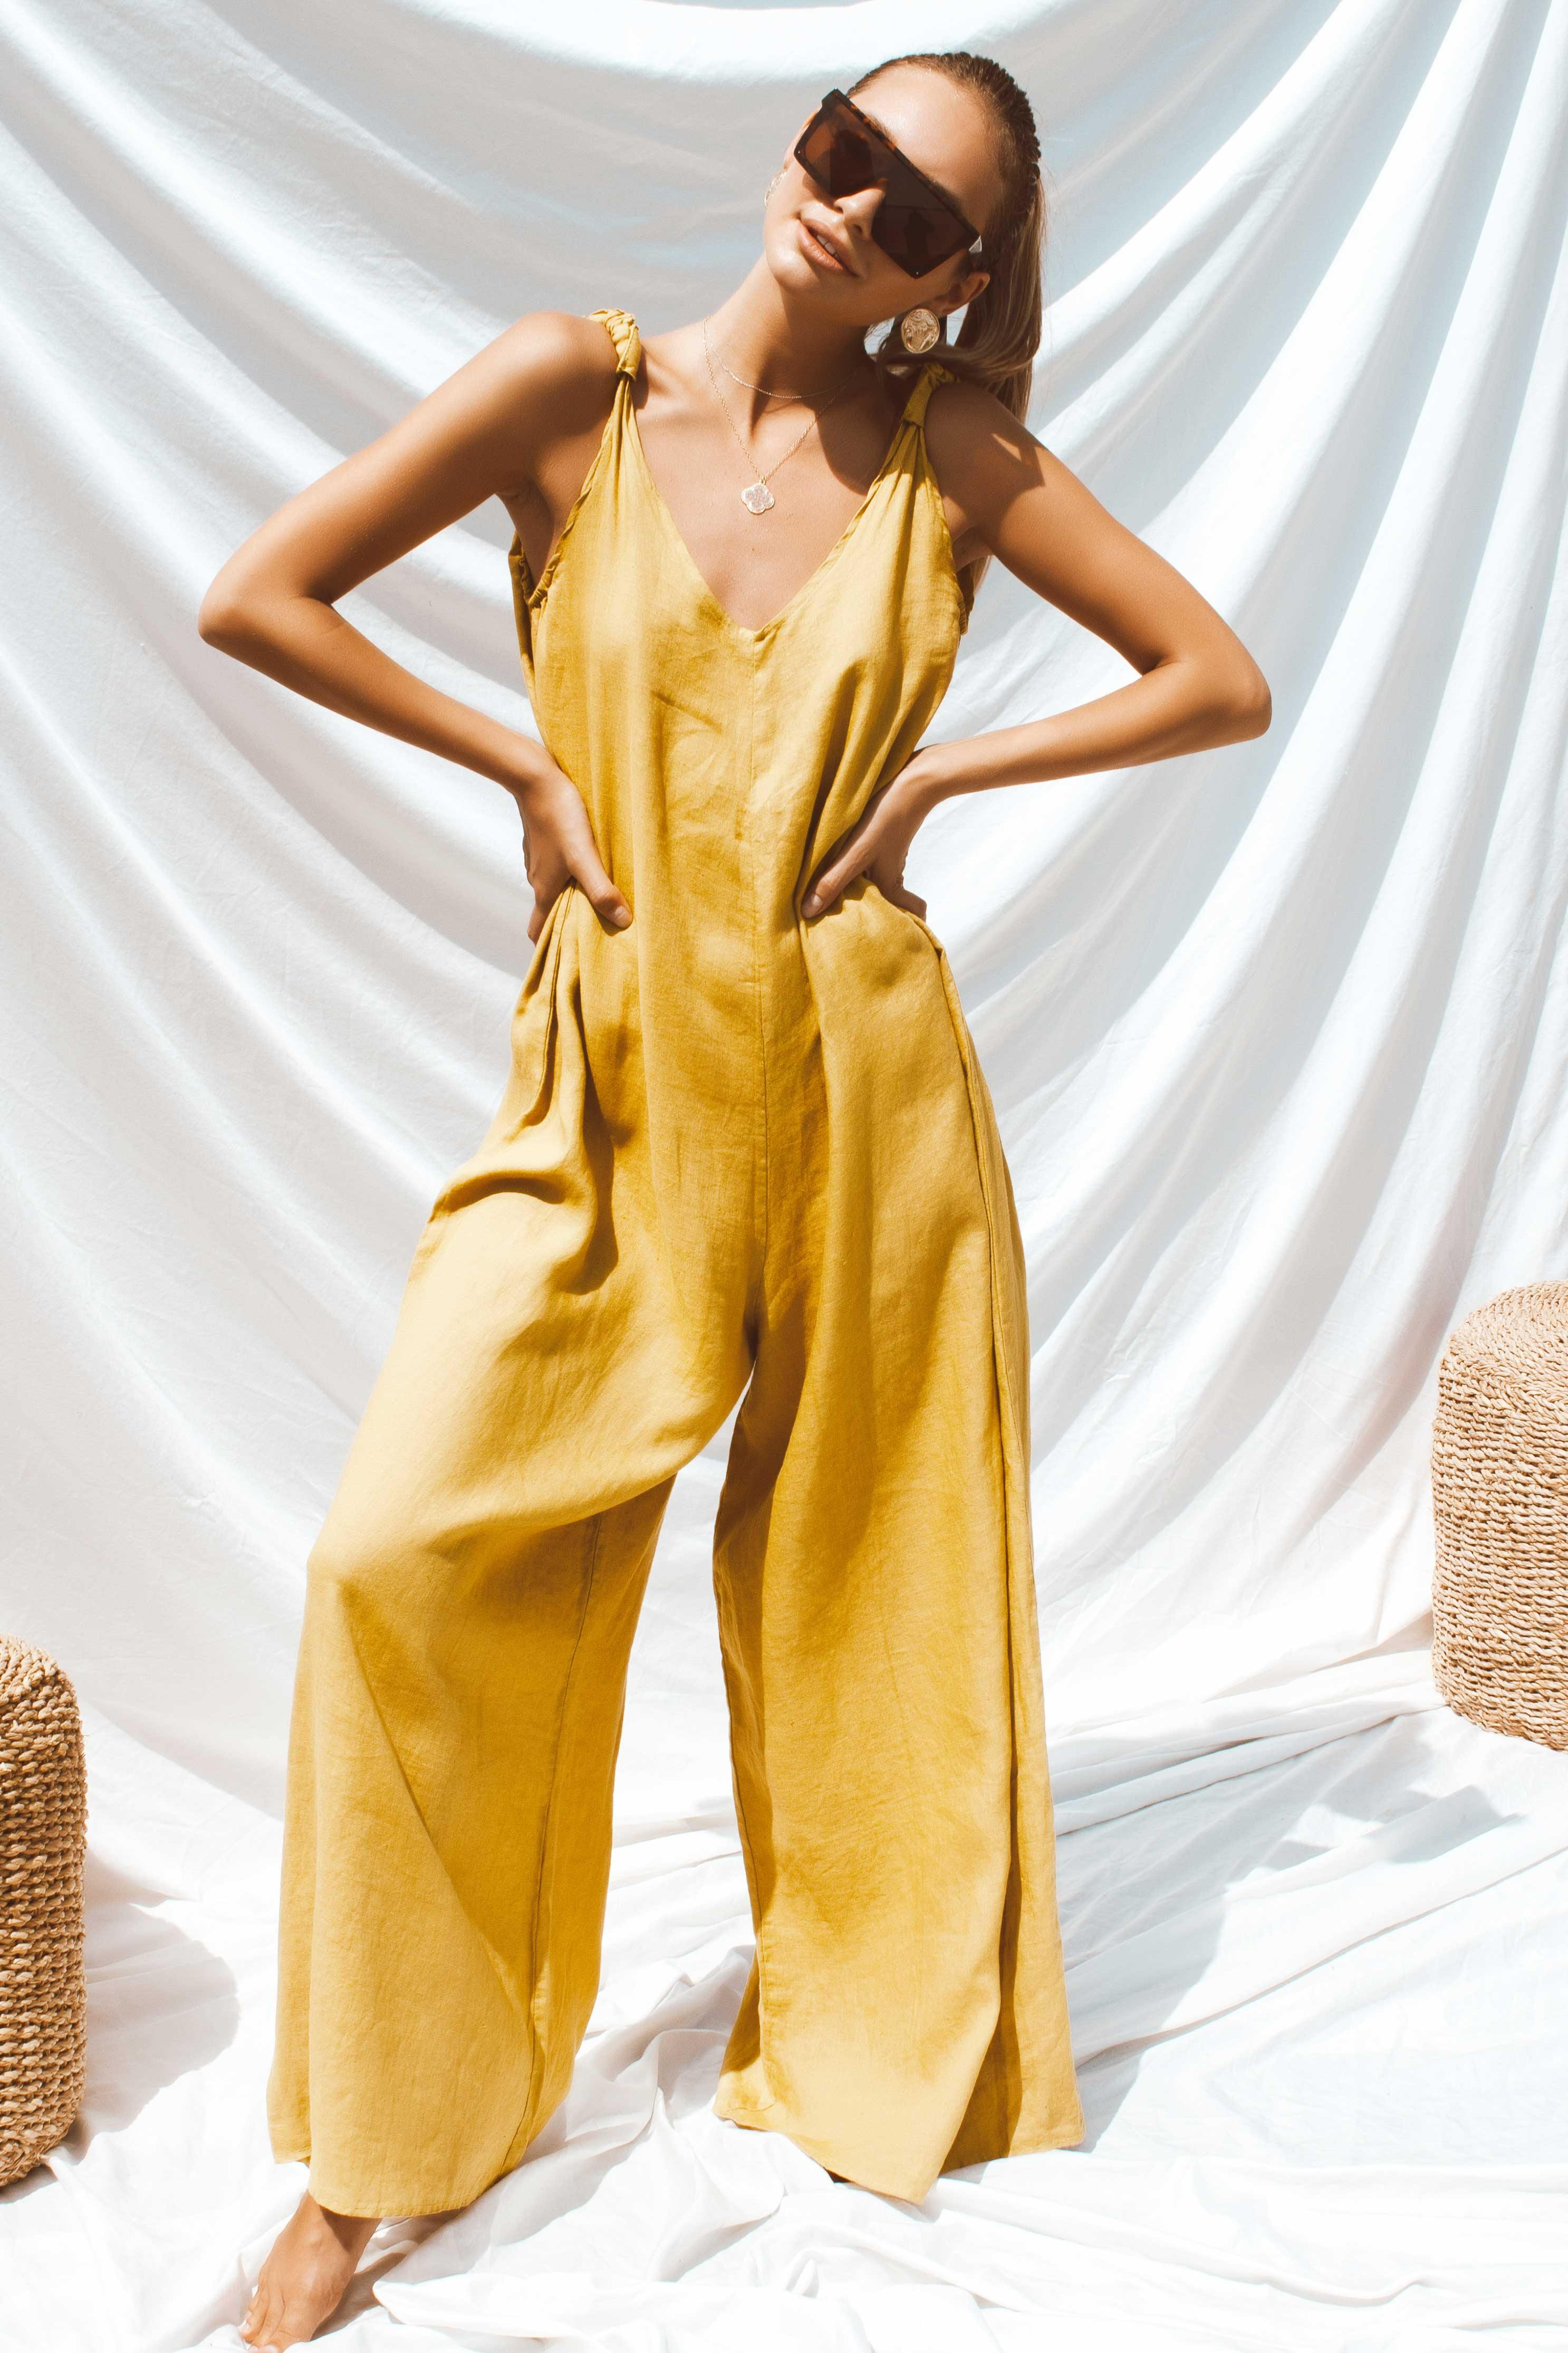 APOLLO JUMPSUIT IN YELLOW - Chic Le Frique